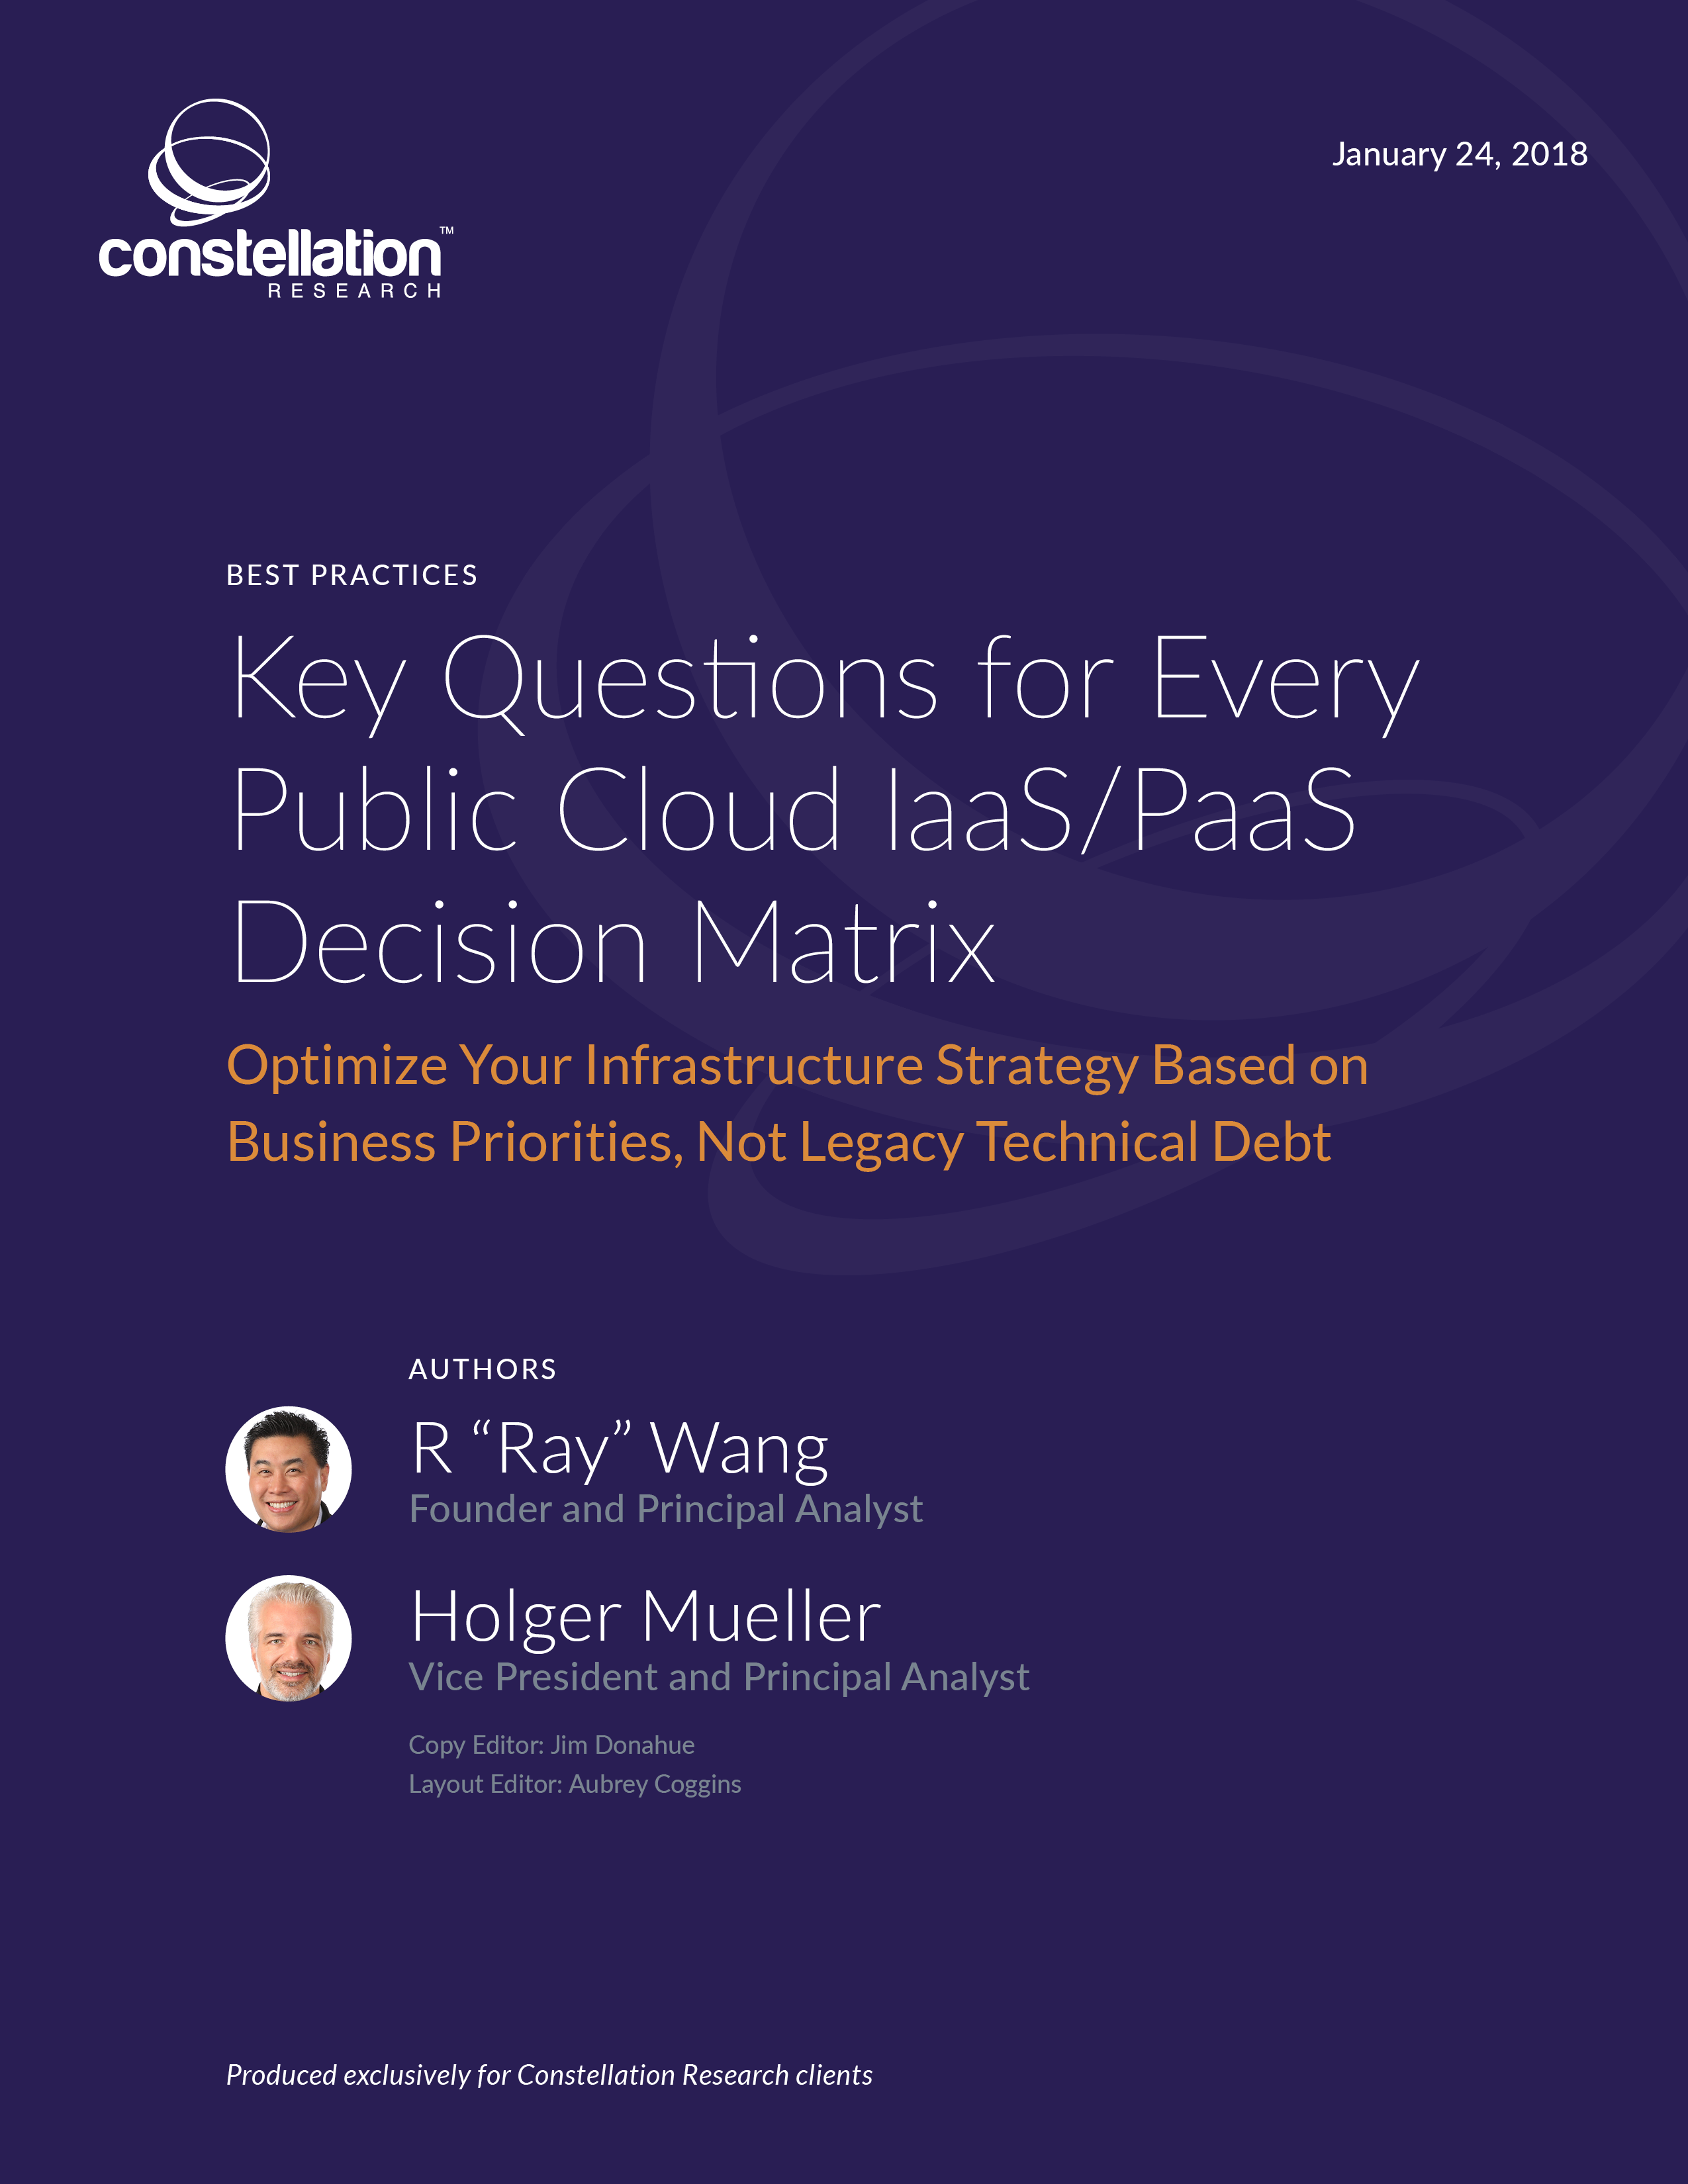 Key Questions for Every Public Cloud IaaS/PaaS Decision